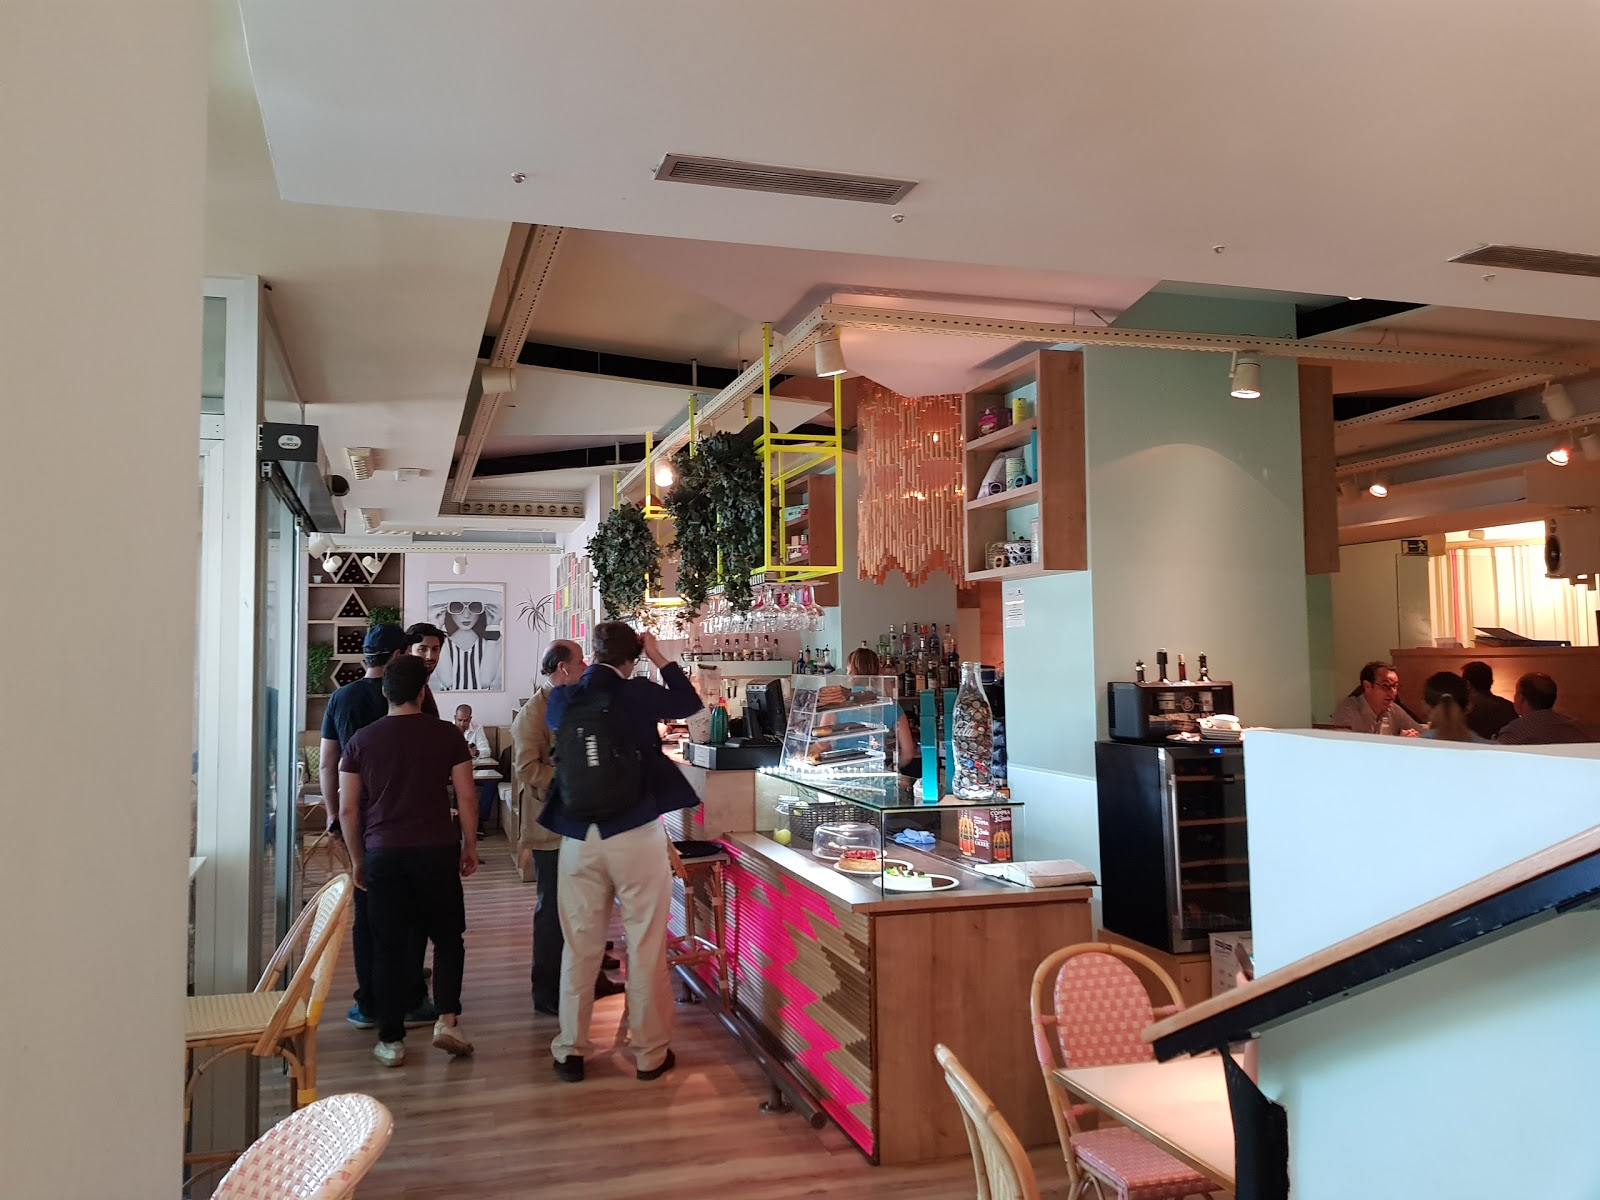 Wanda Café Optimista: A Work-Friendly Place in Madrid